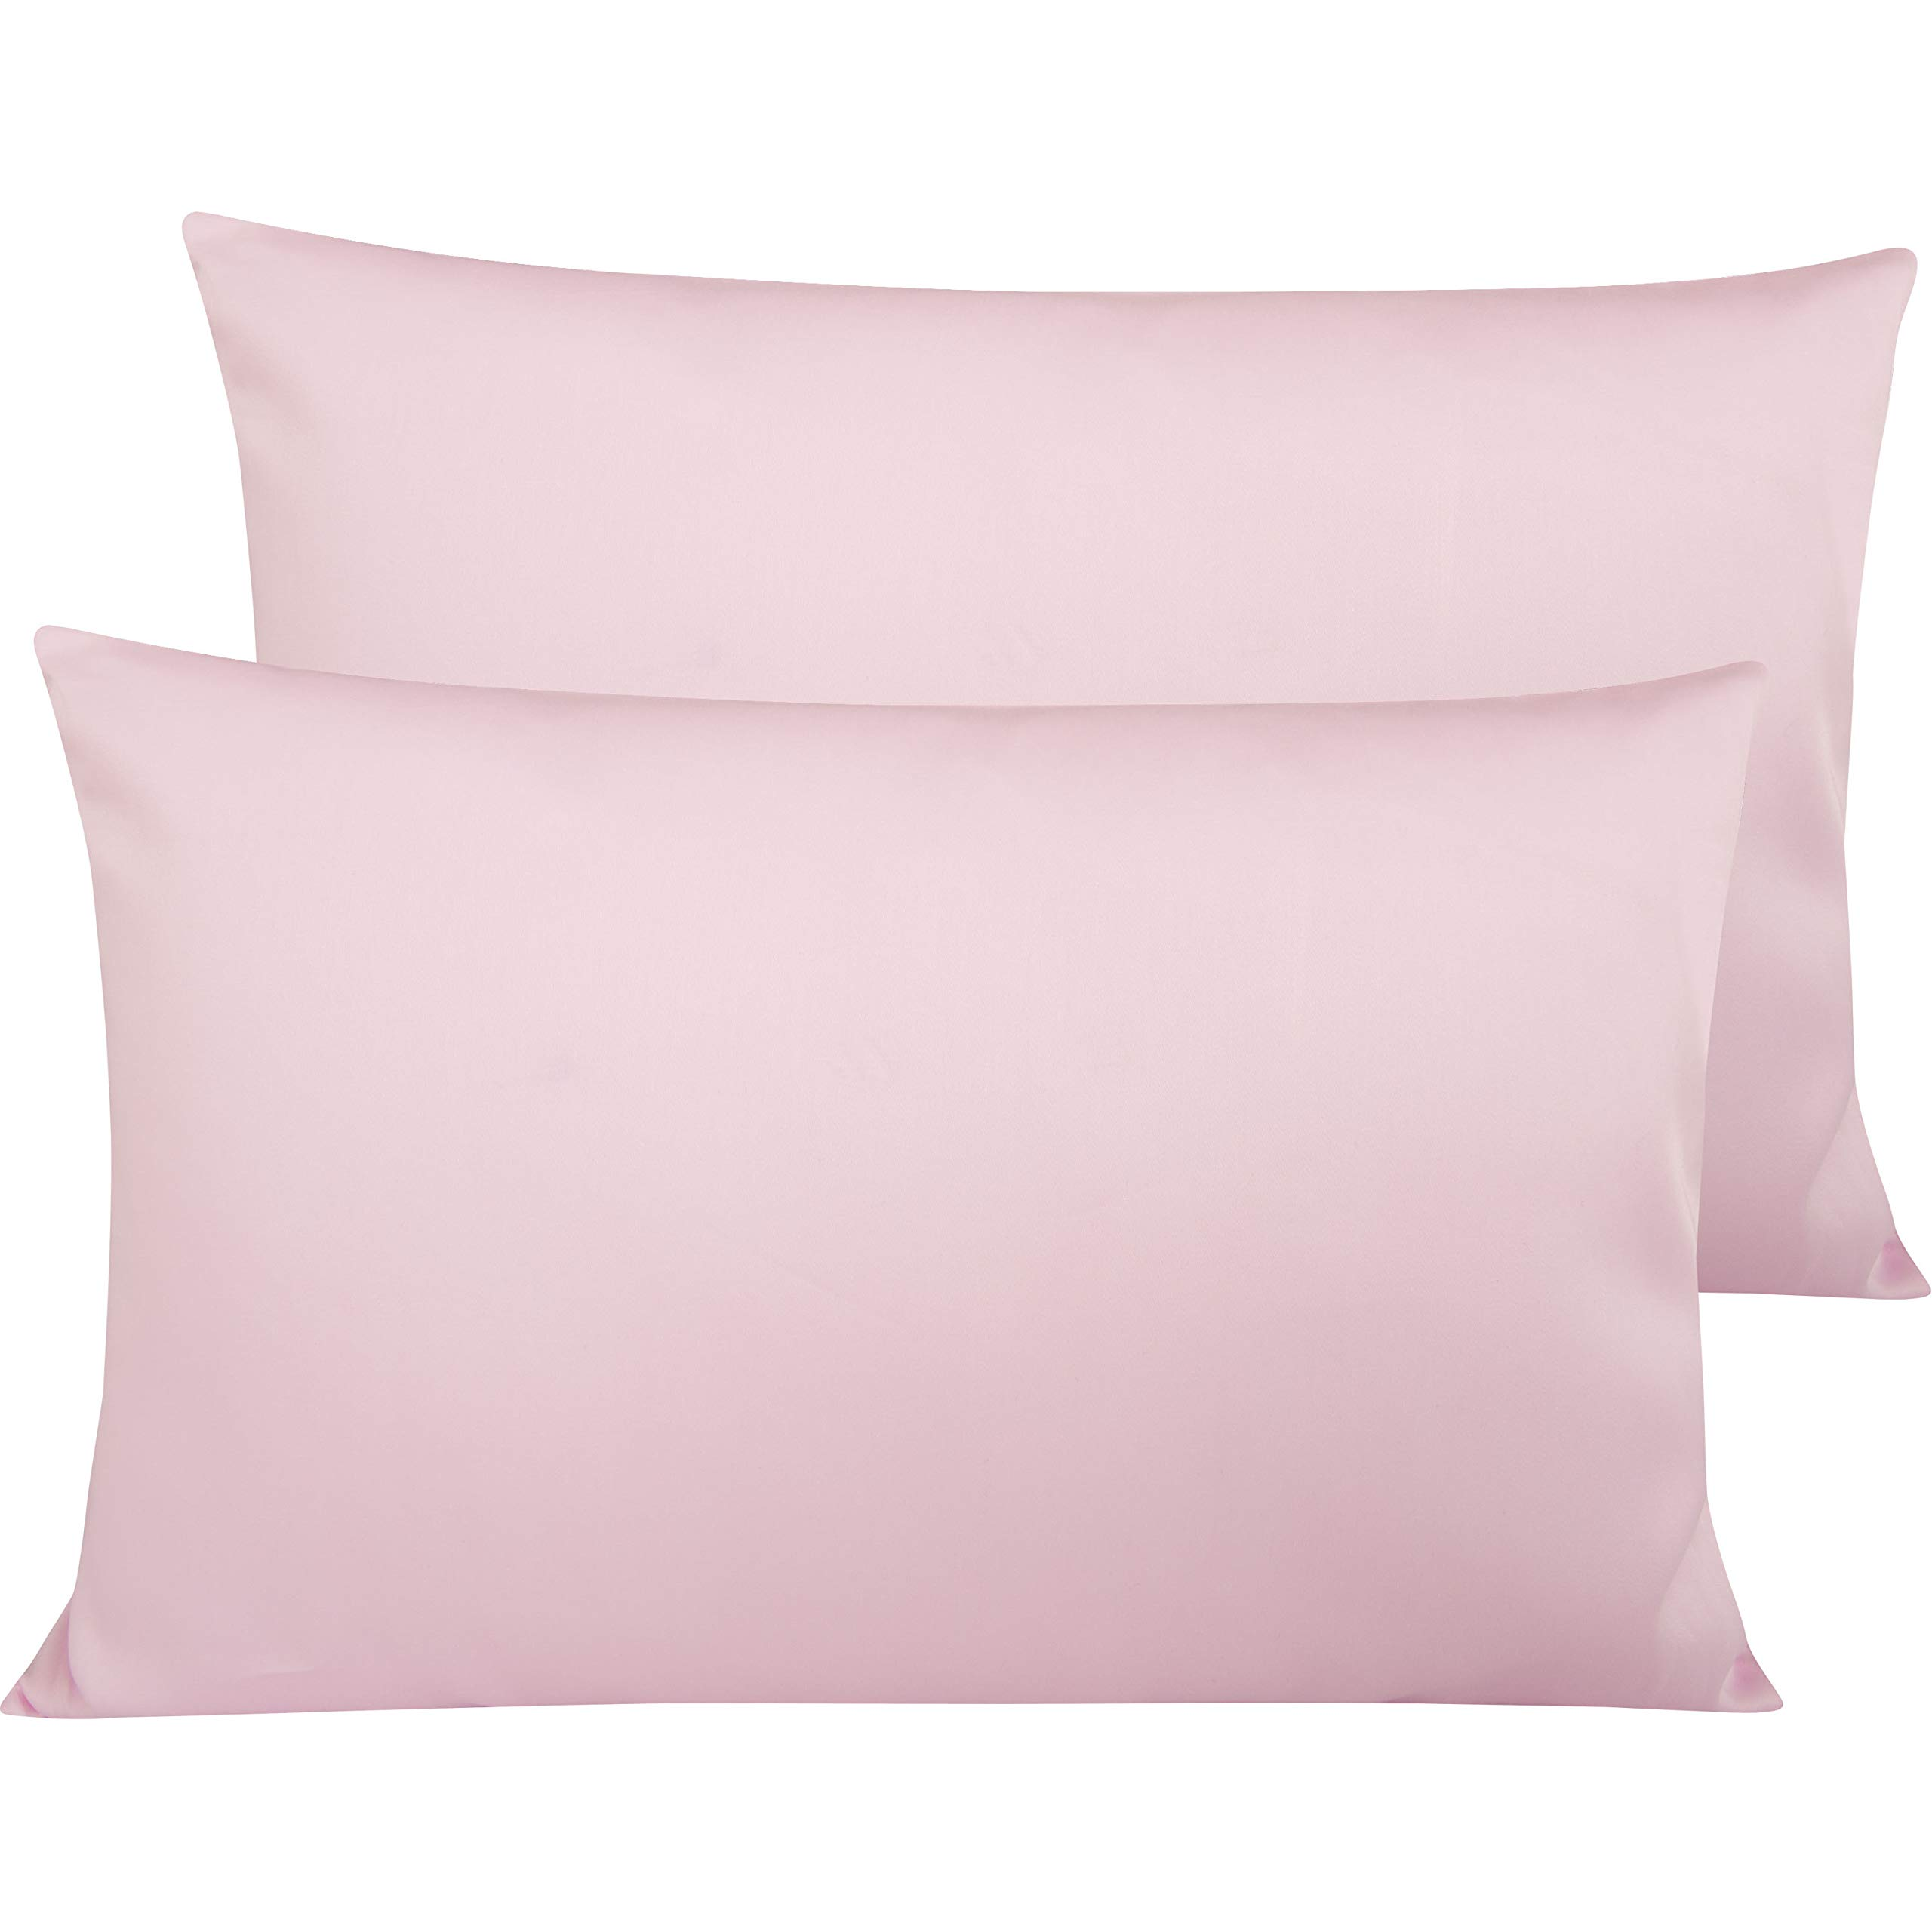 NTBAY 500 Thread Count Cotton Queen Pillowcases, Super Soft and Breathable Envelope Closure Pillow Cases, 20 x 30 Inches, Pink